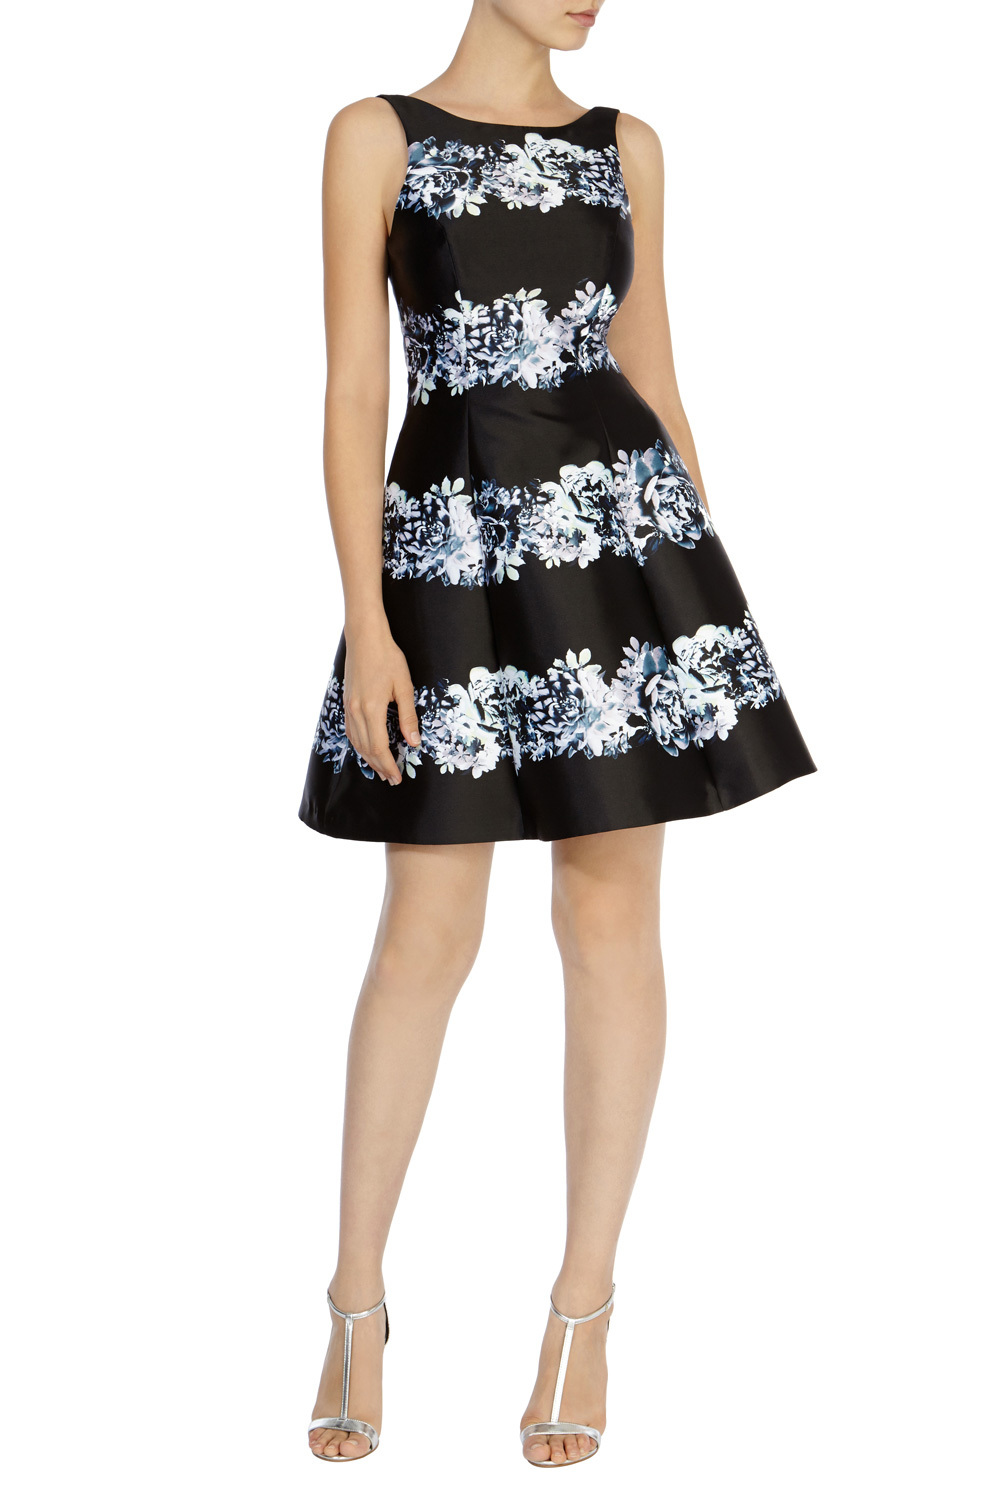 Floral Stripe Millana Dress - length: mid thigh; sleeve style: sleeveless; secondary colour: pale blue; predominant colour: black; occasions: evening, occasion; fit: fitted at waist & bust; style: fit & flare; fibres: polyester/polyamide - 100%; neckline: crew; hip detail: subtle/flattering hip detail; sleeve length: sleeveless; pattern type: fabric; pattern: patterned/print; texture group: woven light midweight; season: s/s 2016; wardrobe: event